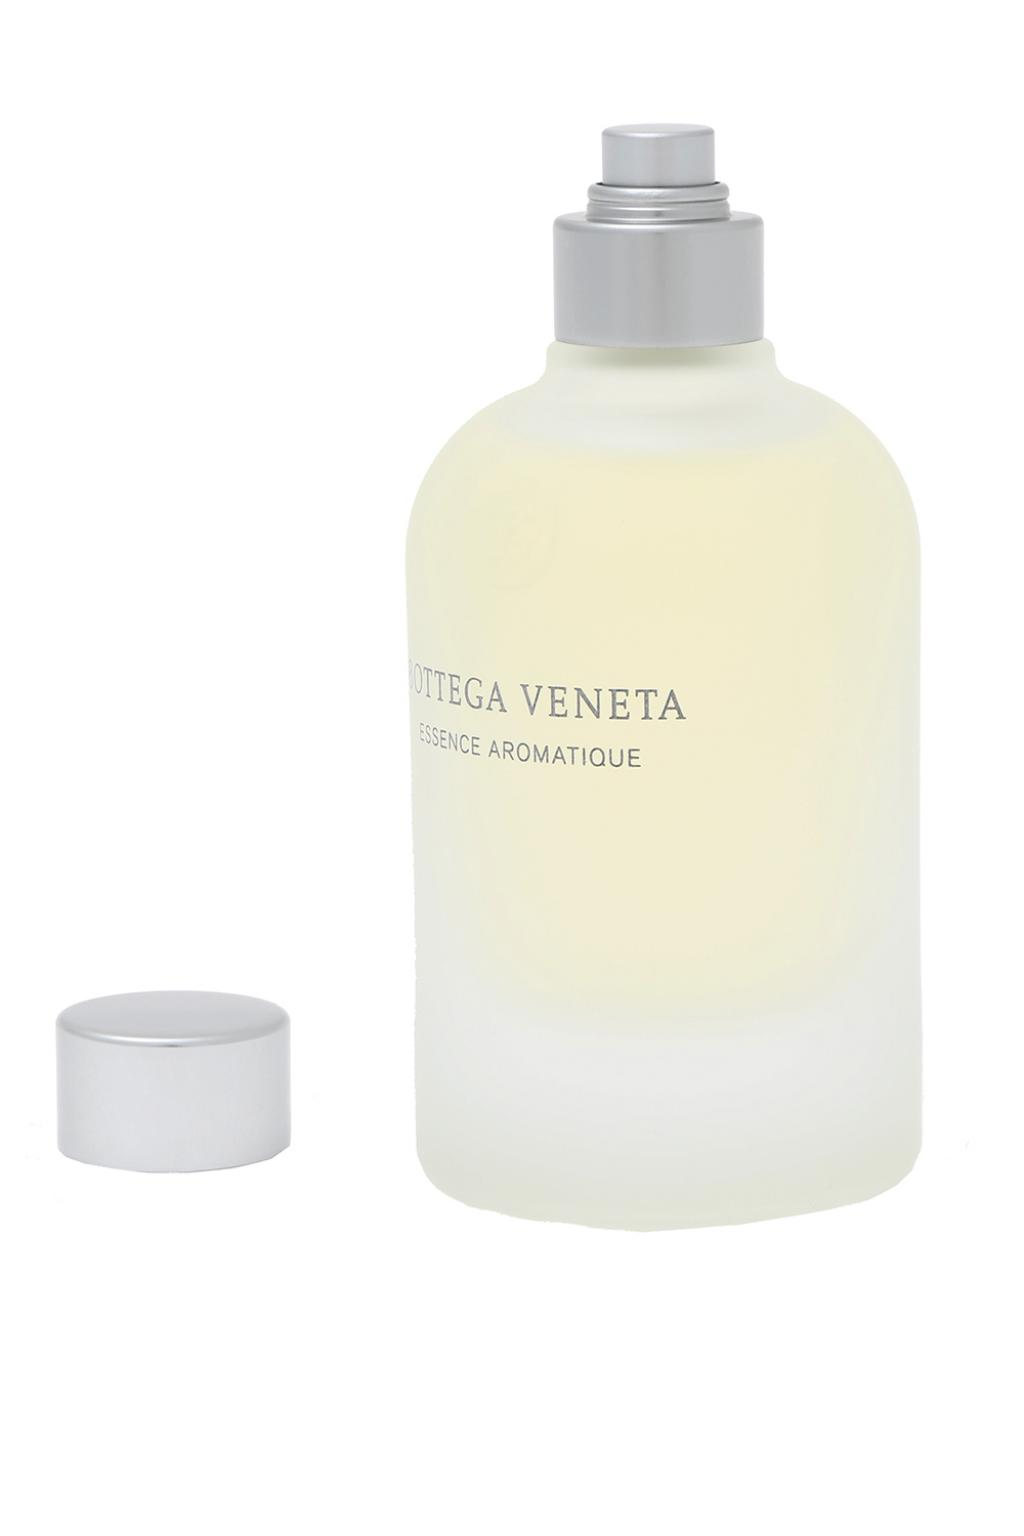 Bottega Veneta Bottega Veneta 'Essence Aromatique' cologne 50ml